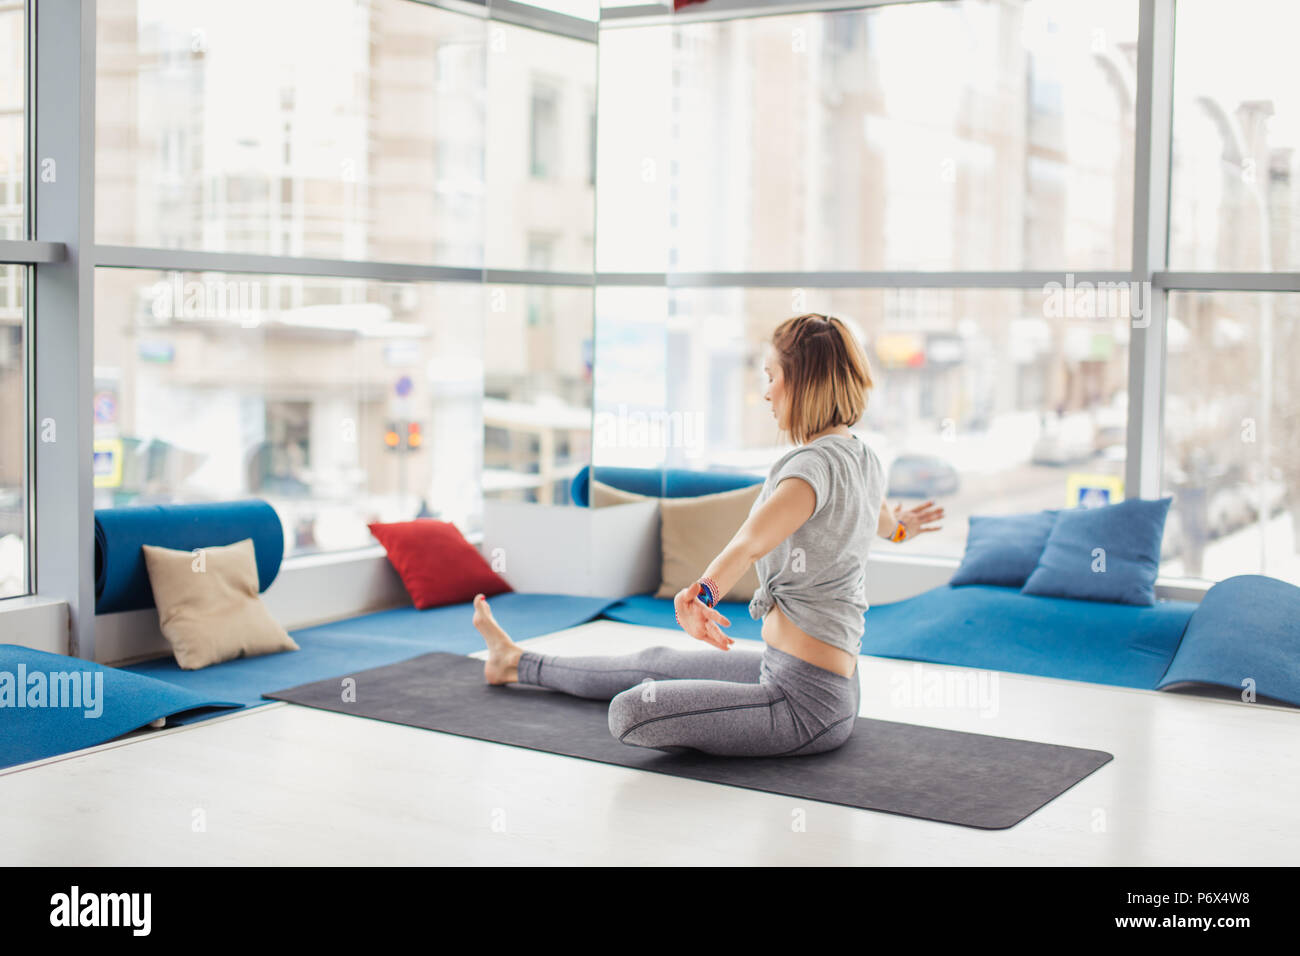 unrecognizable young woman in grey spotrwear working out against big window, doing yoga or pilates exercise. Full length - Stock Image